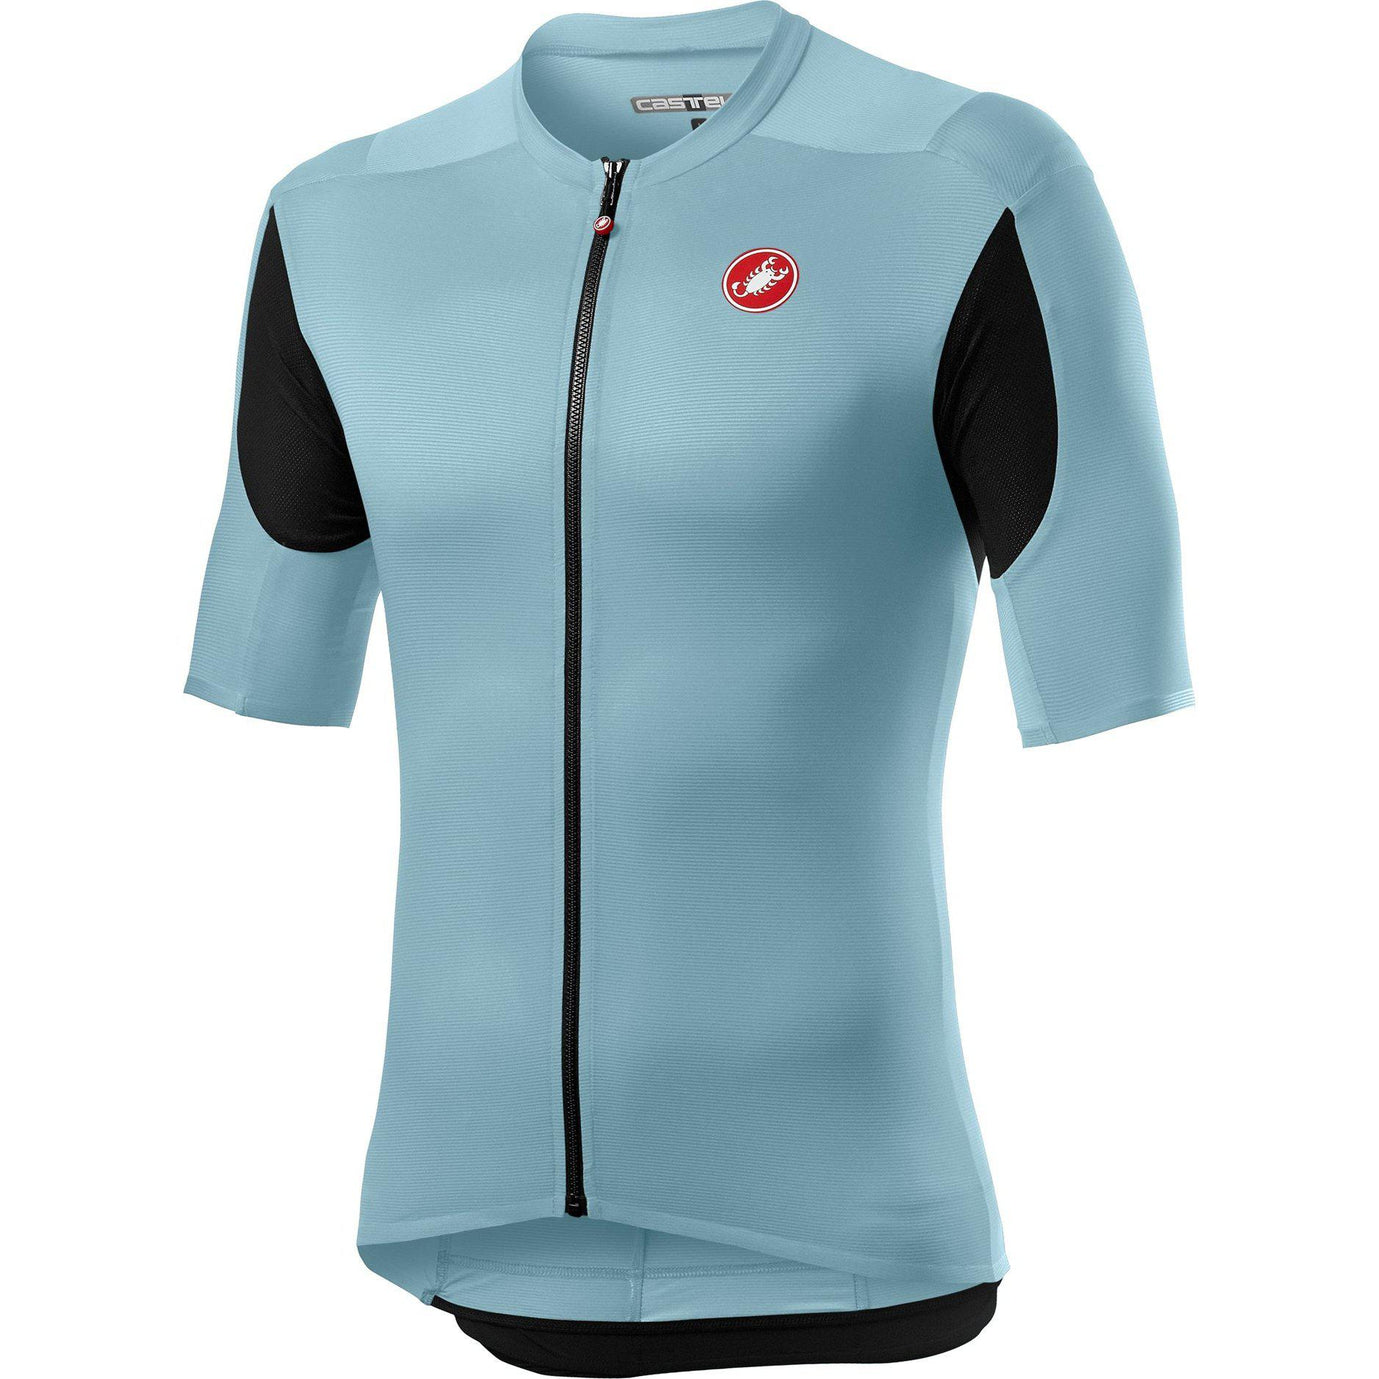 Castelli-Castelli Superleggera 2 Jersey-Vortex Gray-XS-CS200178601-saddleback-elite-performance-cycling